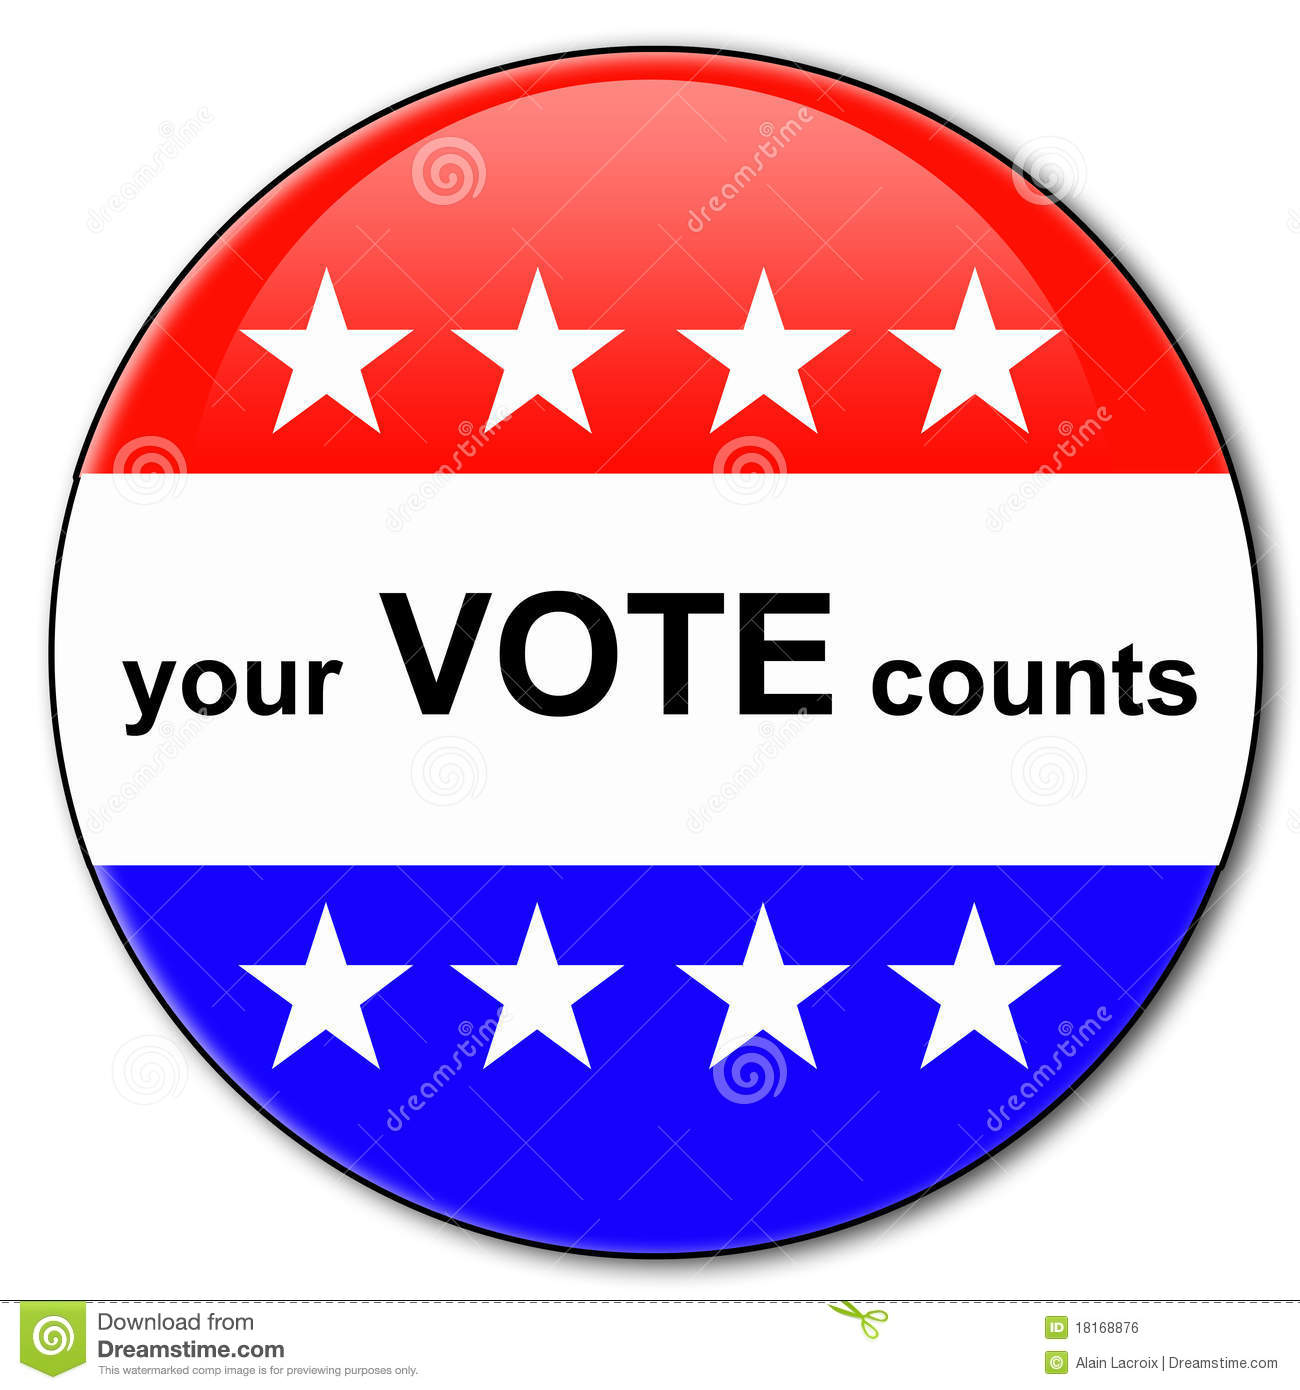 Your Vote Counts Royalty Free Stock Image   Image  18168876